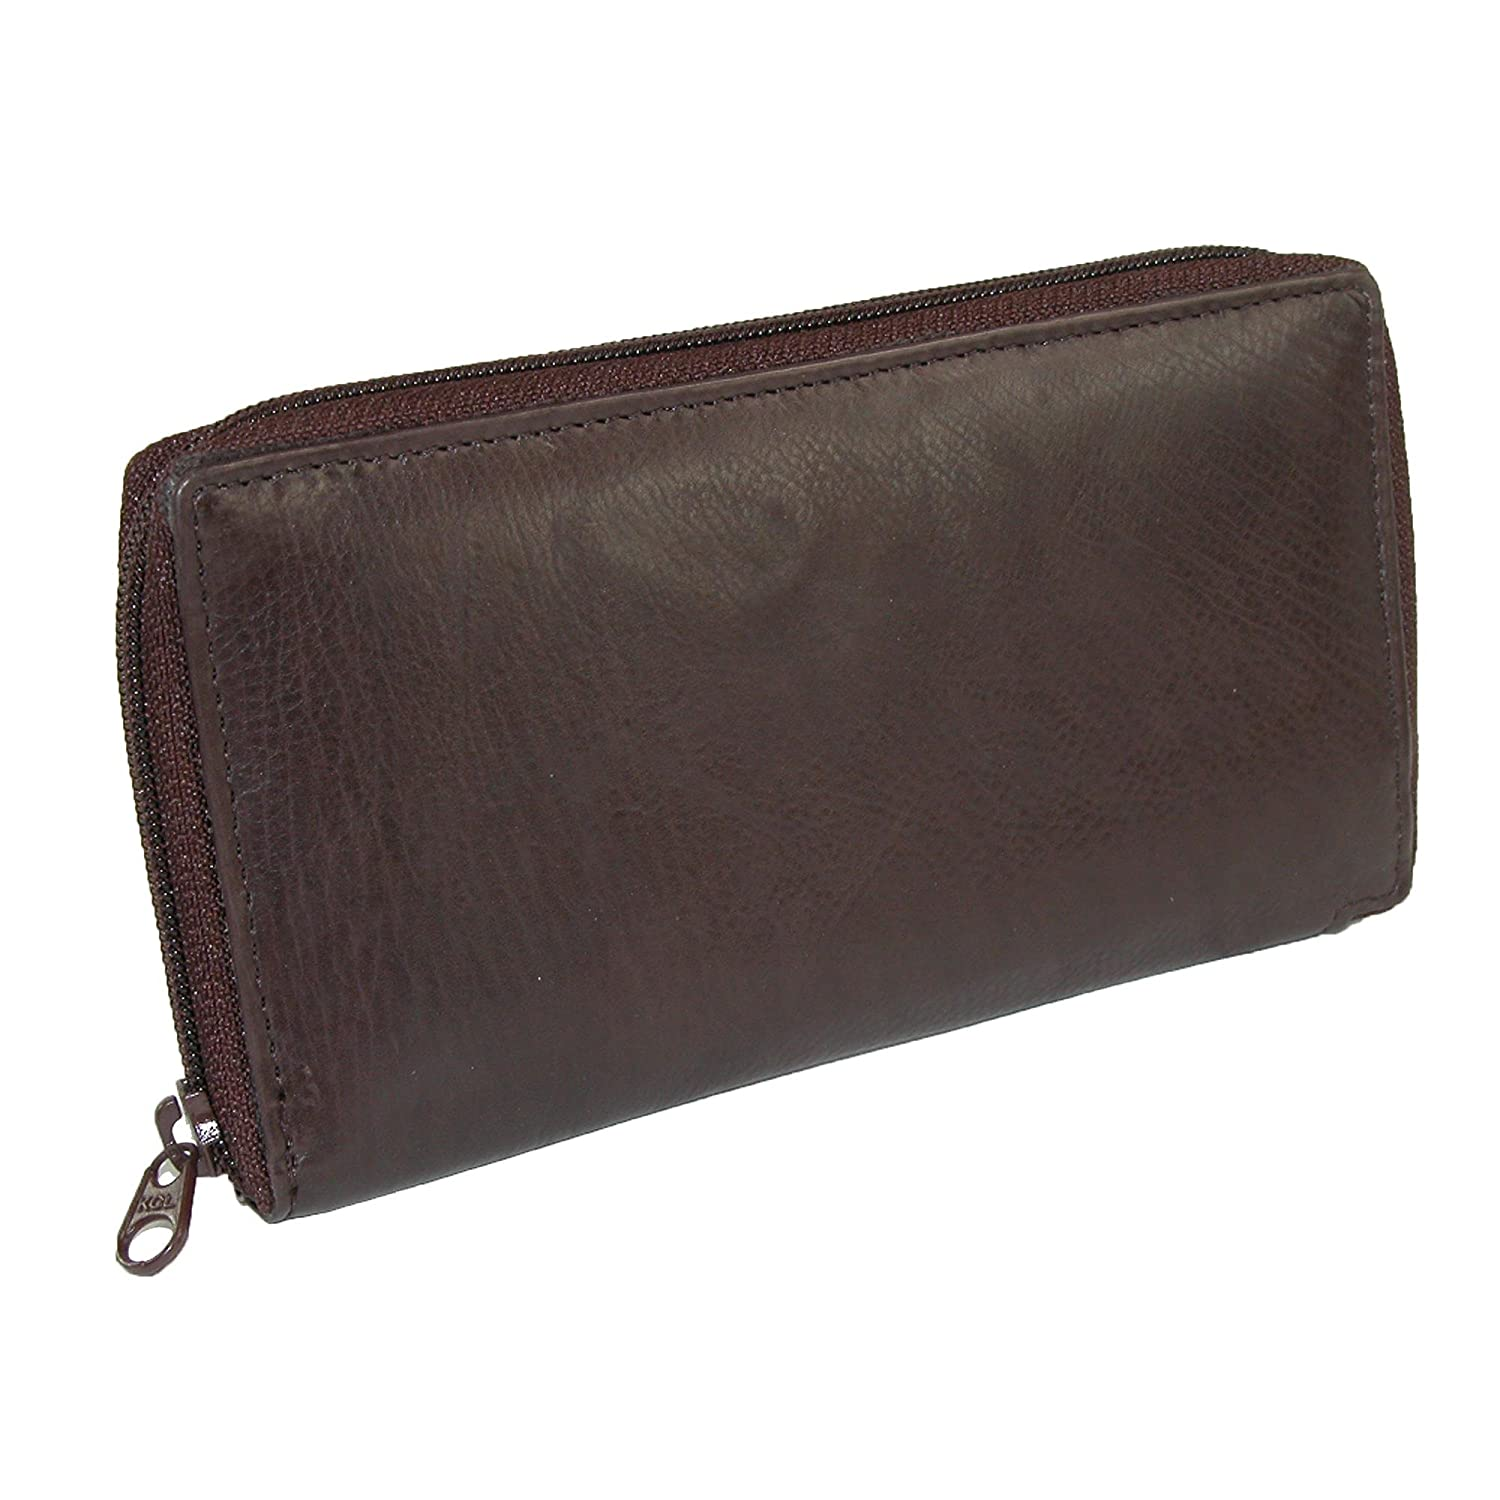 Paul & Taylor Genuine Leather Deluxe Wallet w/ Checkbook Cover (Black) 2518 BLACK